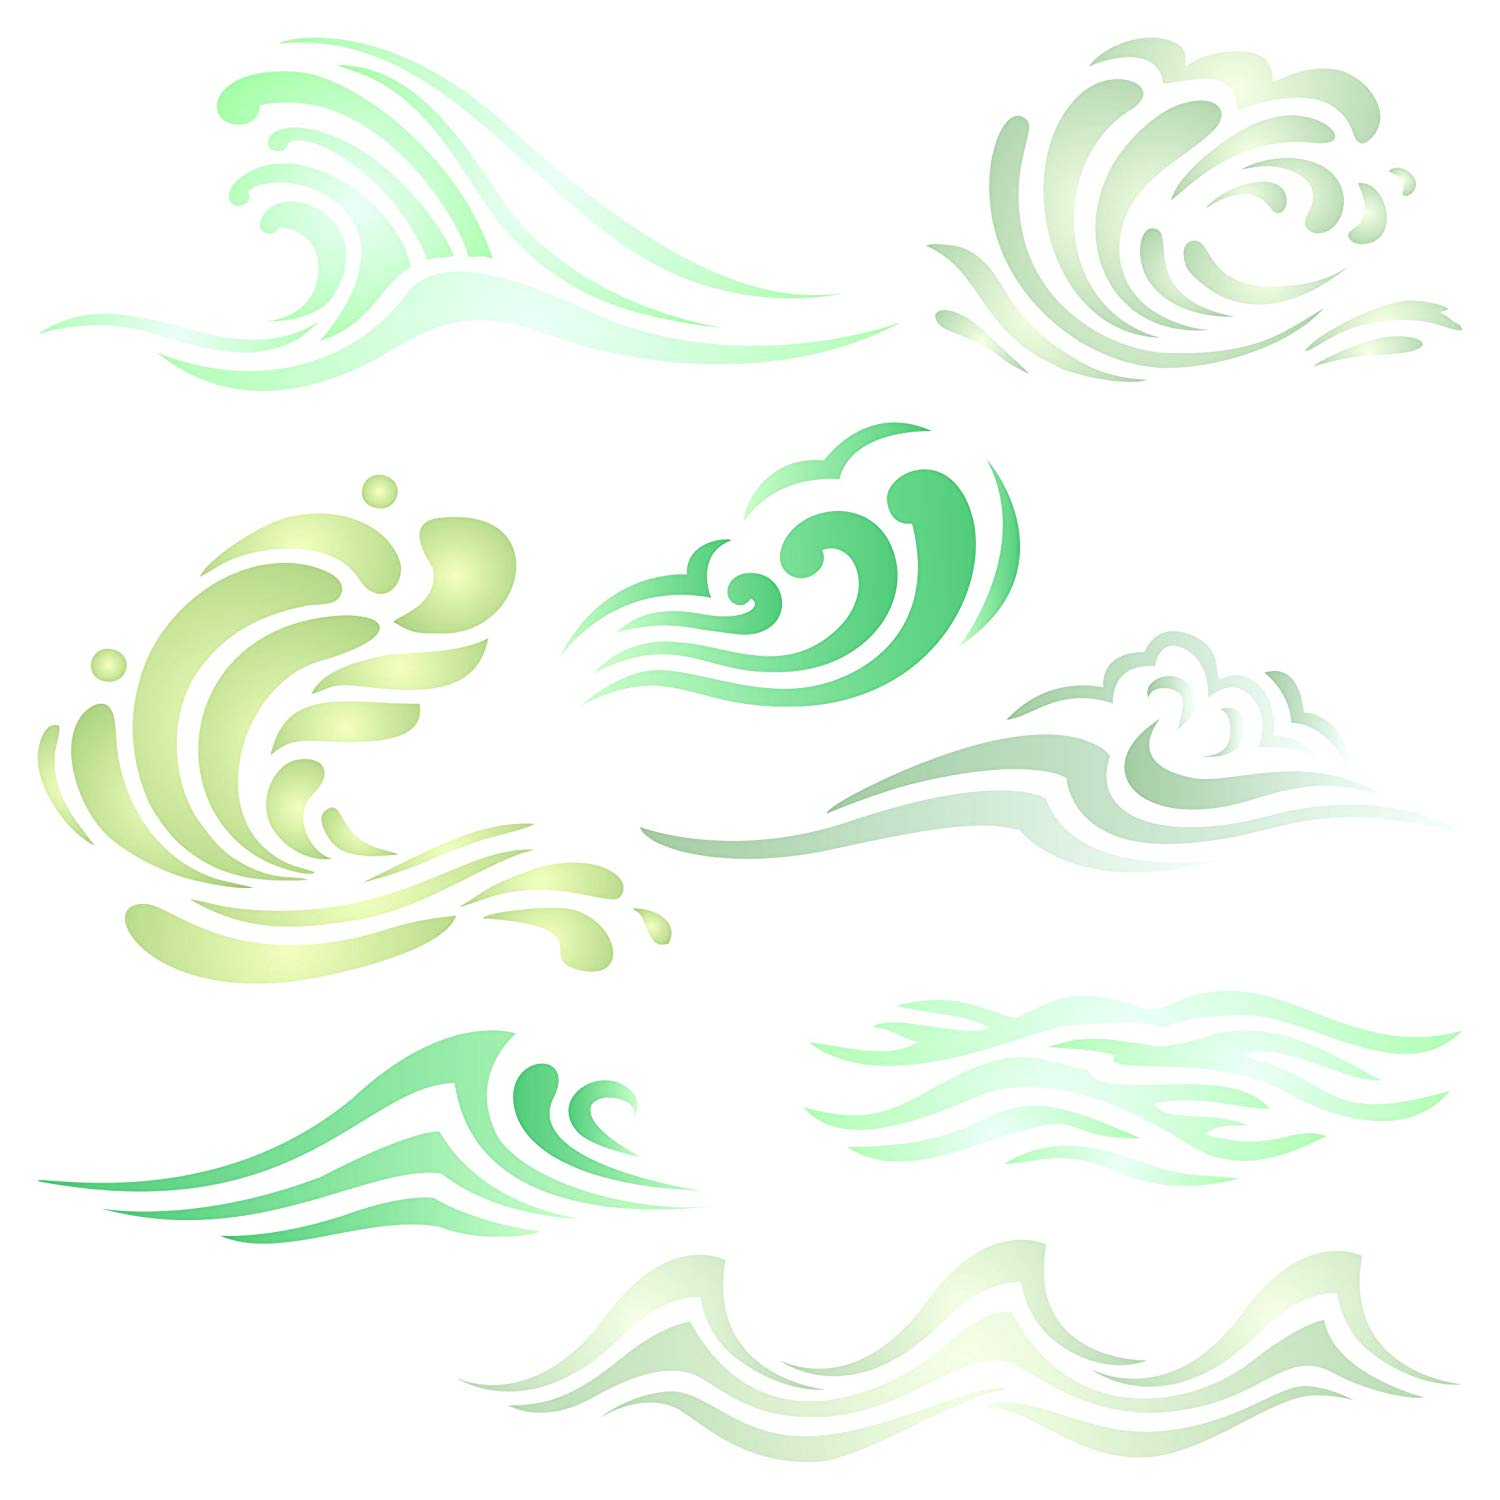 DIY Decorative Wave Stencil Template for Scrapbooking Painting on Wall Furniture Crafts Set of 6 Wave